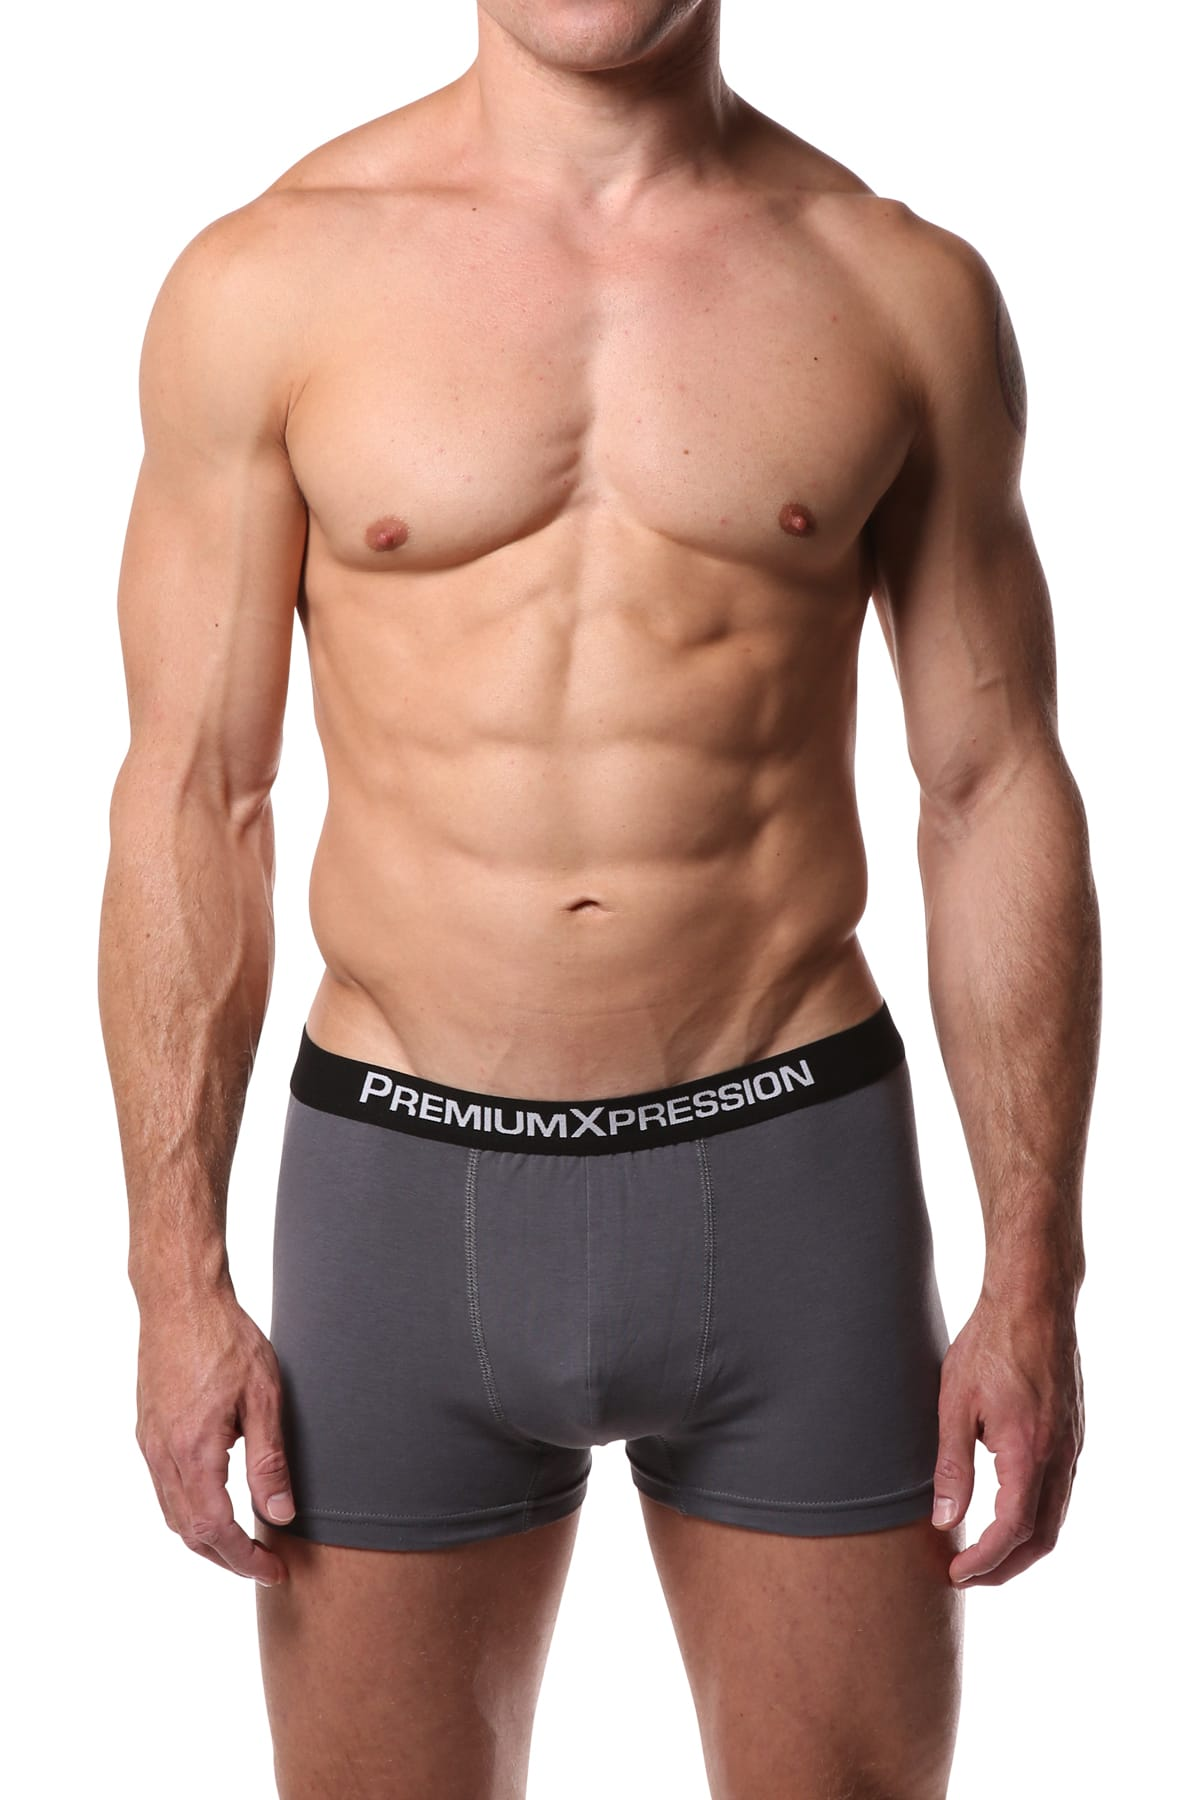 Premium Xpression Charcoal Trunk